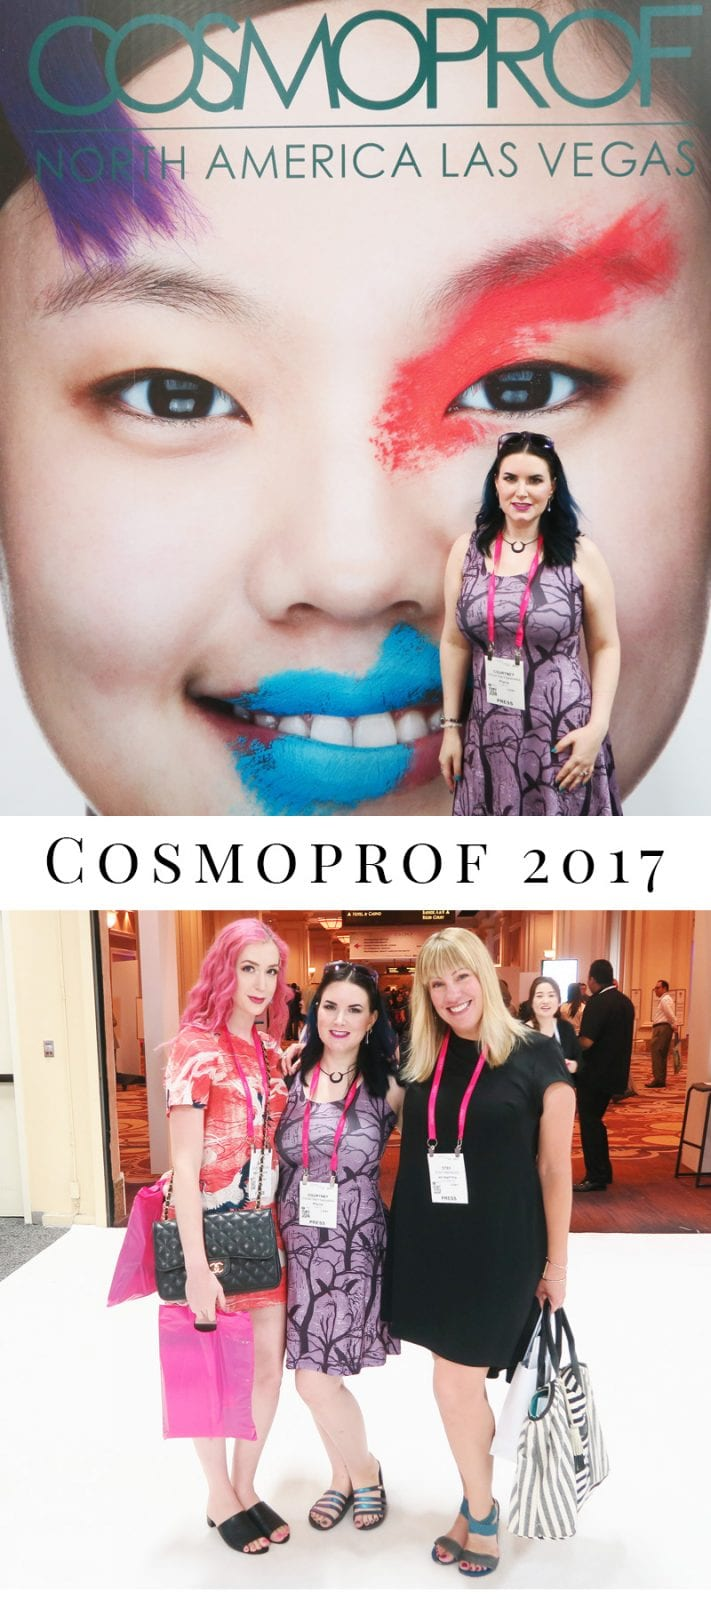 Cosmoprof 2017 Convention Experience - This was my first Cosmoprof and I had an amazing time! I went to Cosmoprof to learn about upcoming new and innovative products, to network with brands and bloggers, and build relationships with brands.